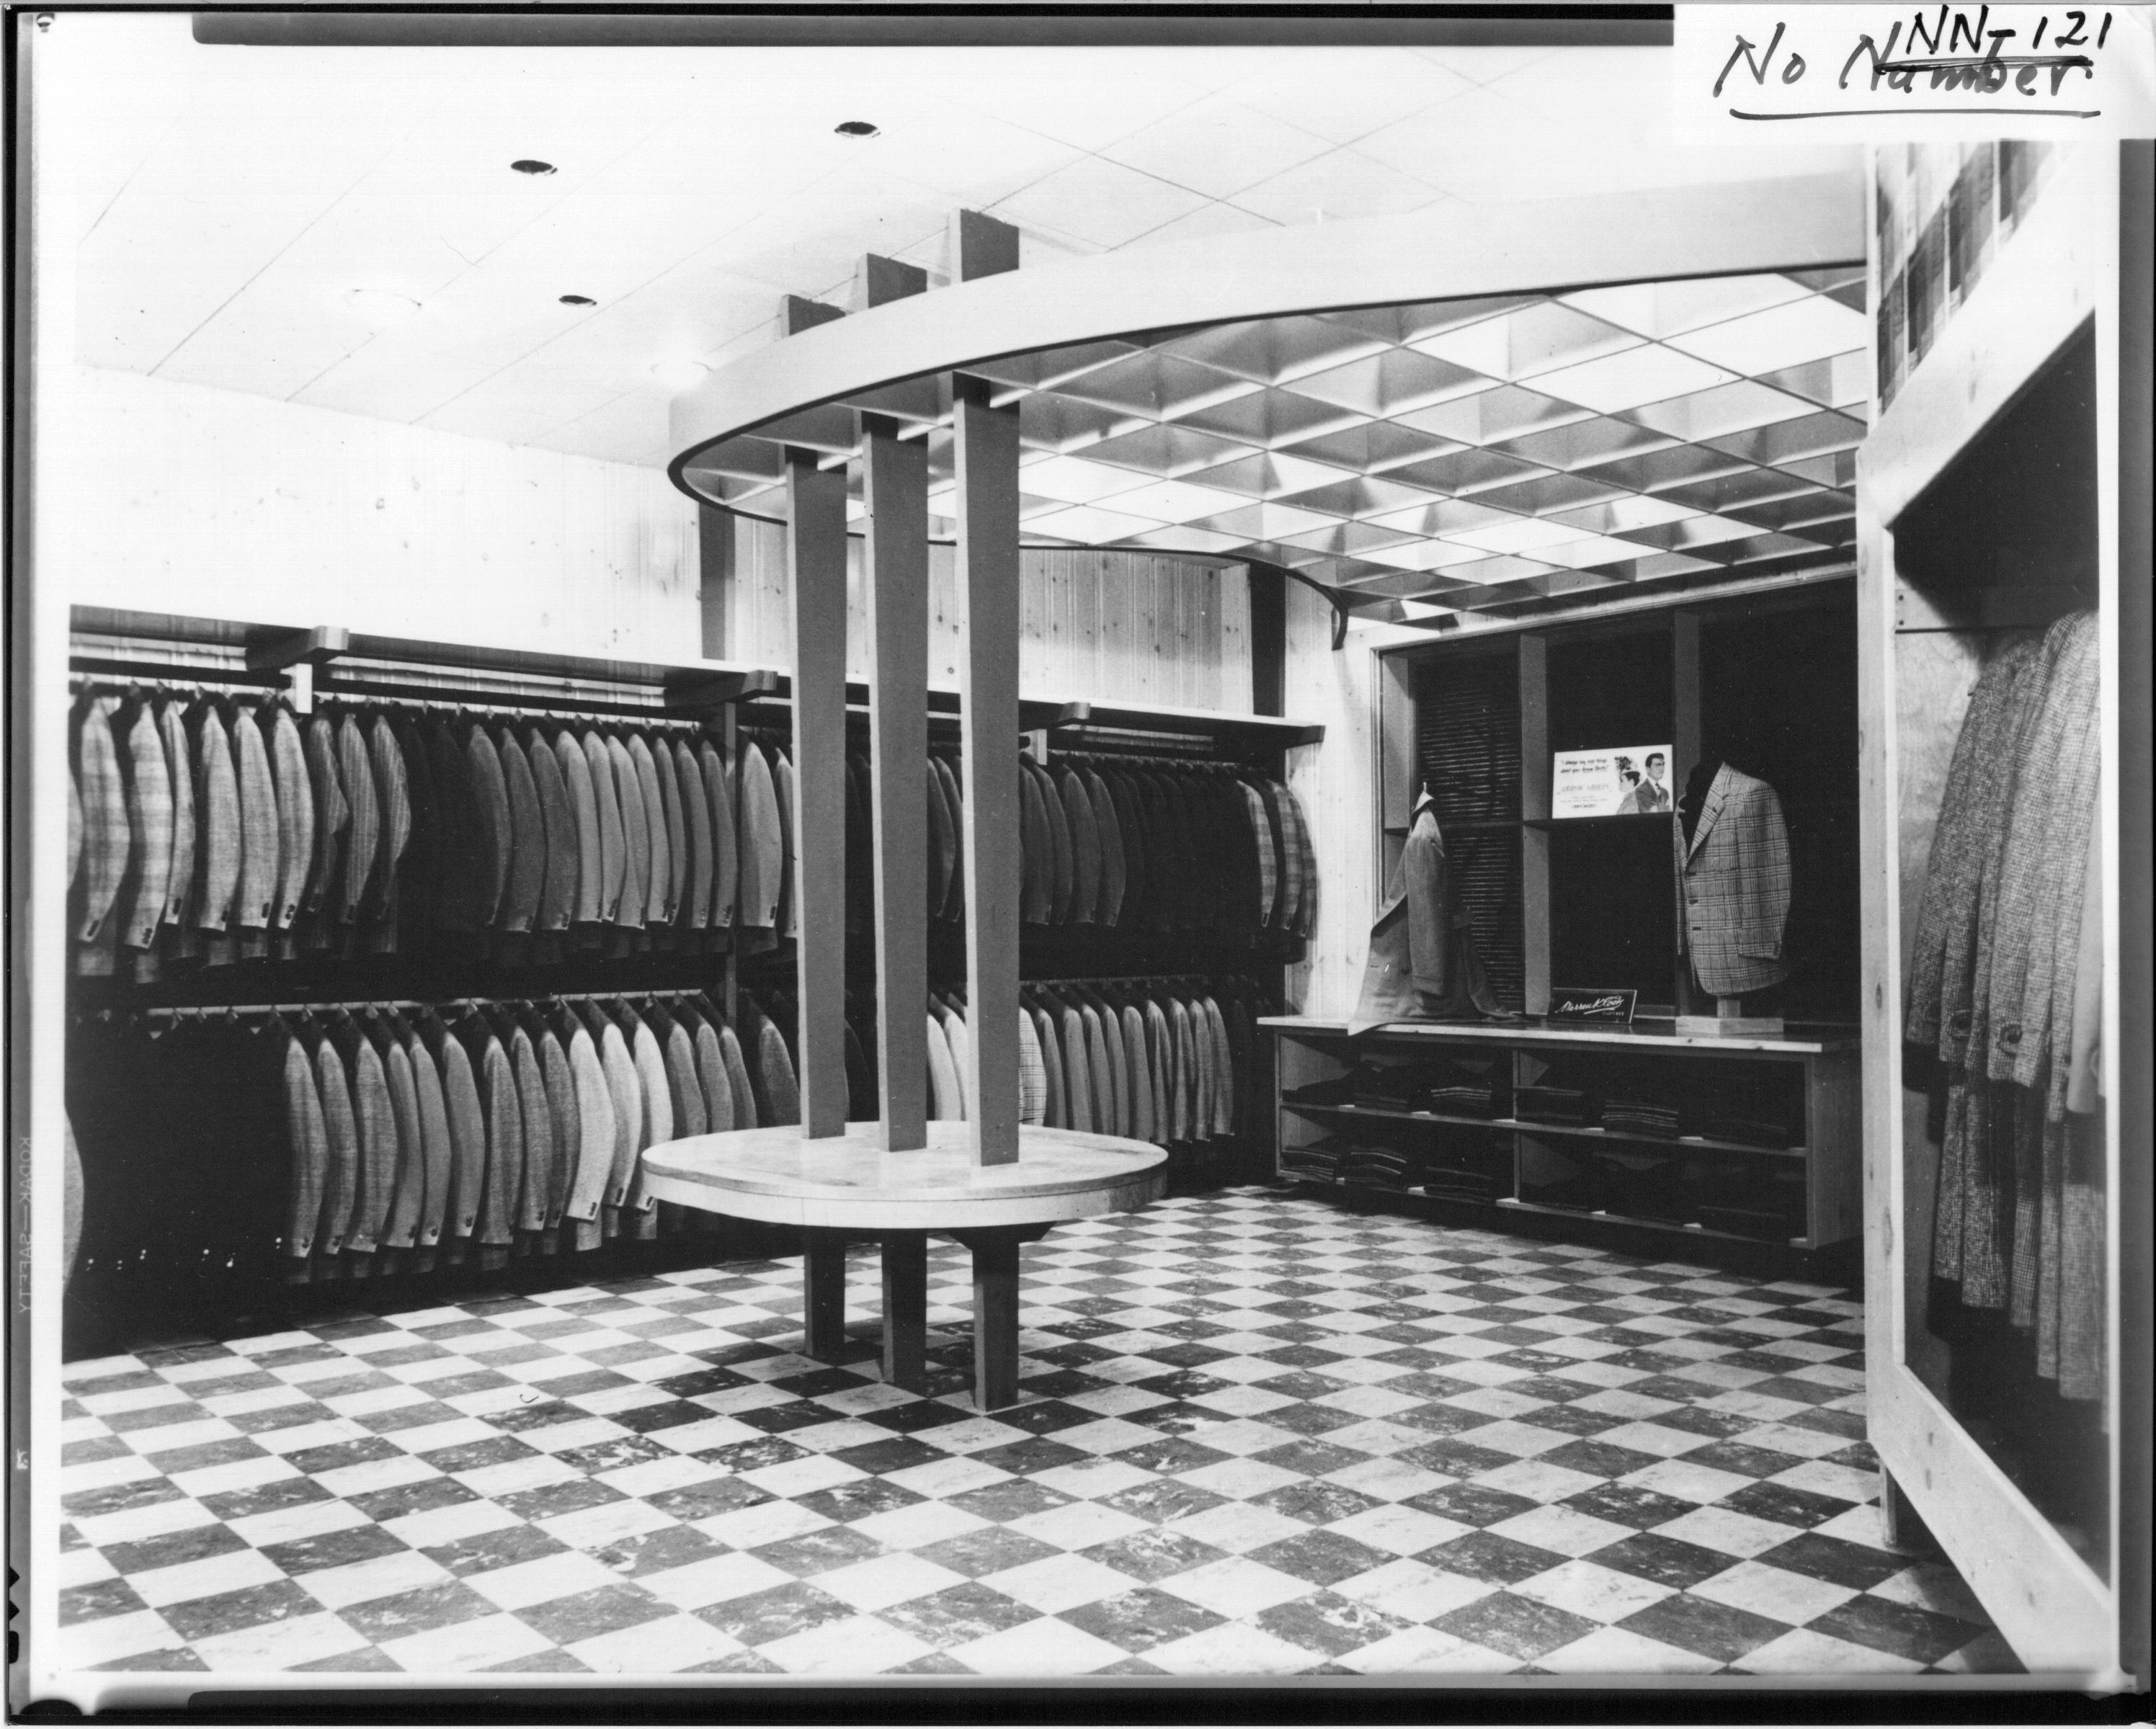 File:Boyes And Herd Clothing Store Interior Showing Coat Racks N.d.  (3191726843).